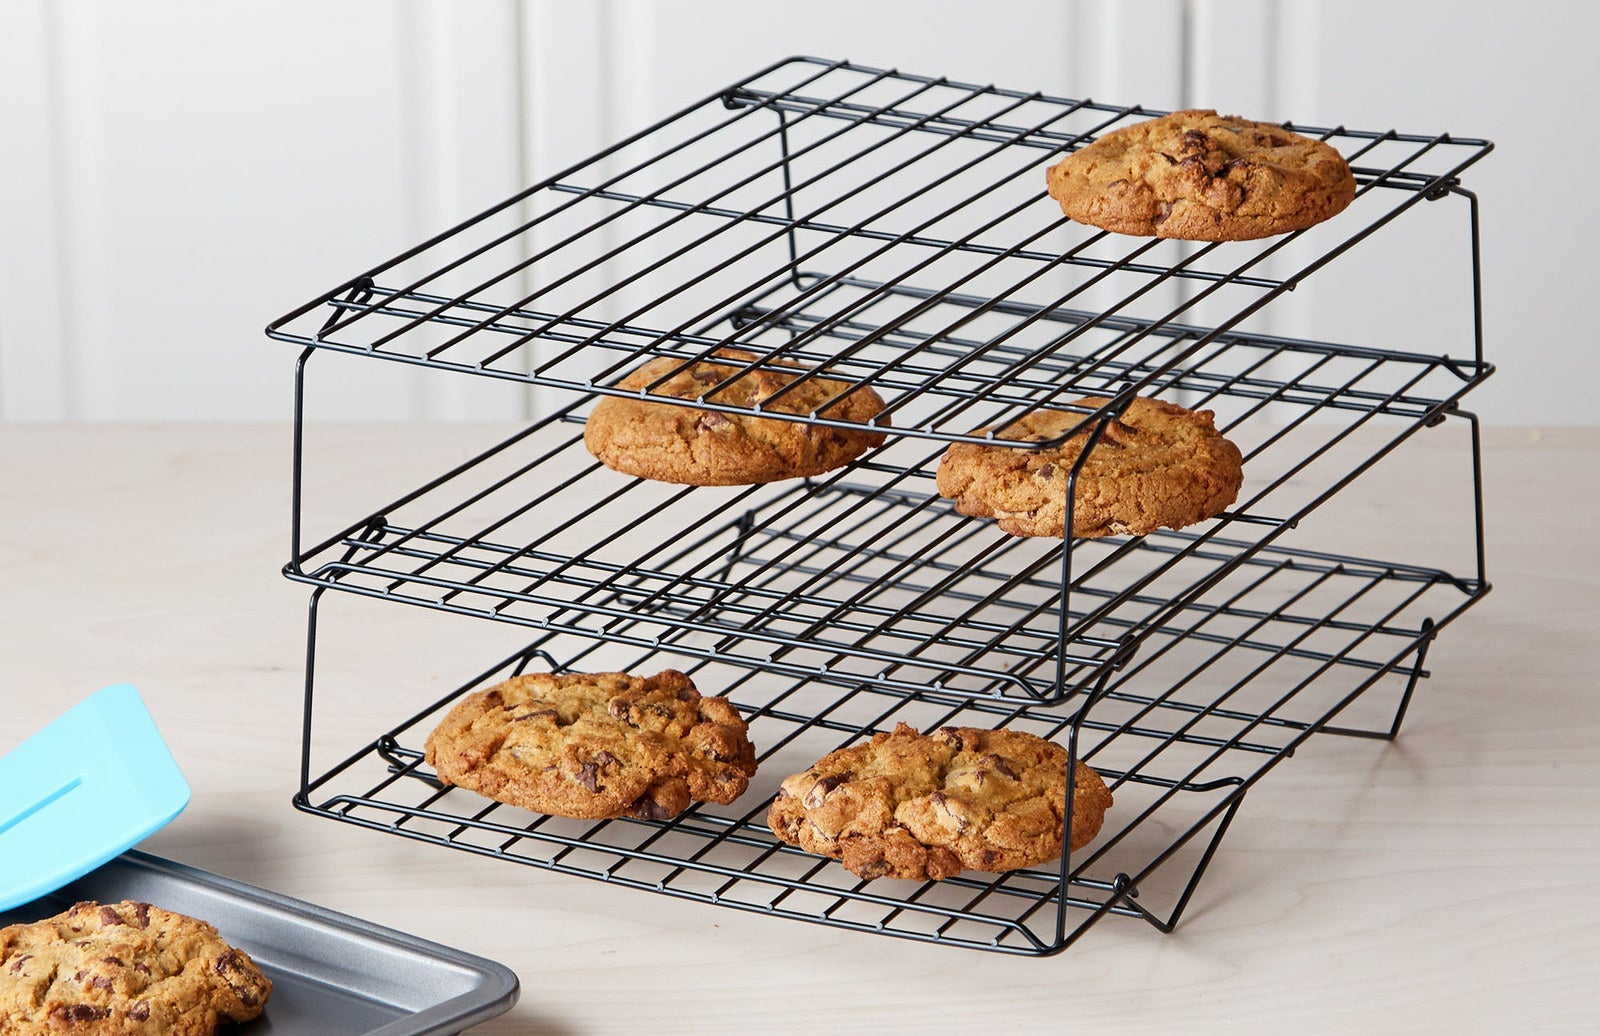 Rack folds flat for easy storage and is made of BPA- and PFOA-free non-stick coating.Get it from BuzzFeed's Tasty line, exclusively at Walmart for $8.87 (originally $12.99).